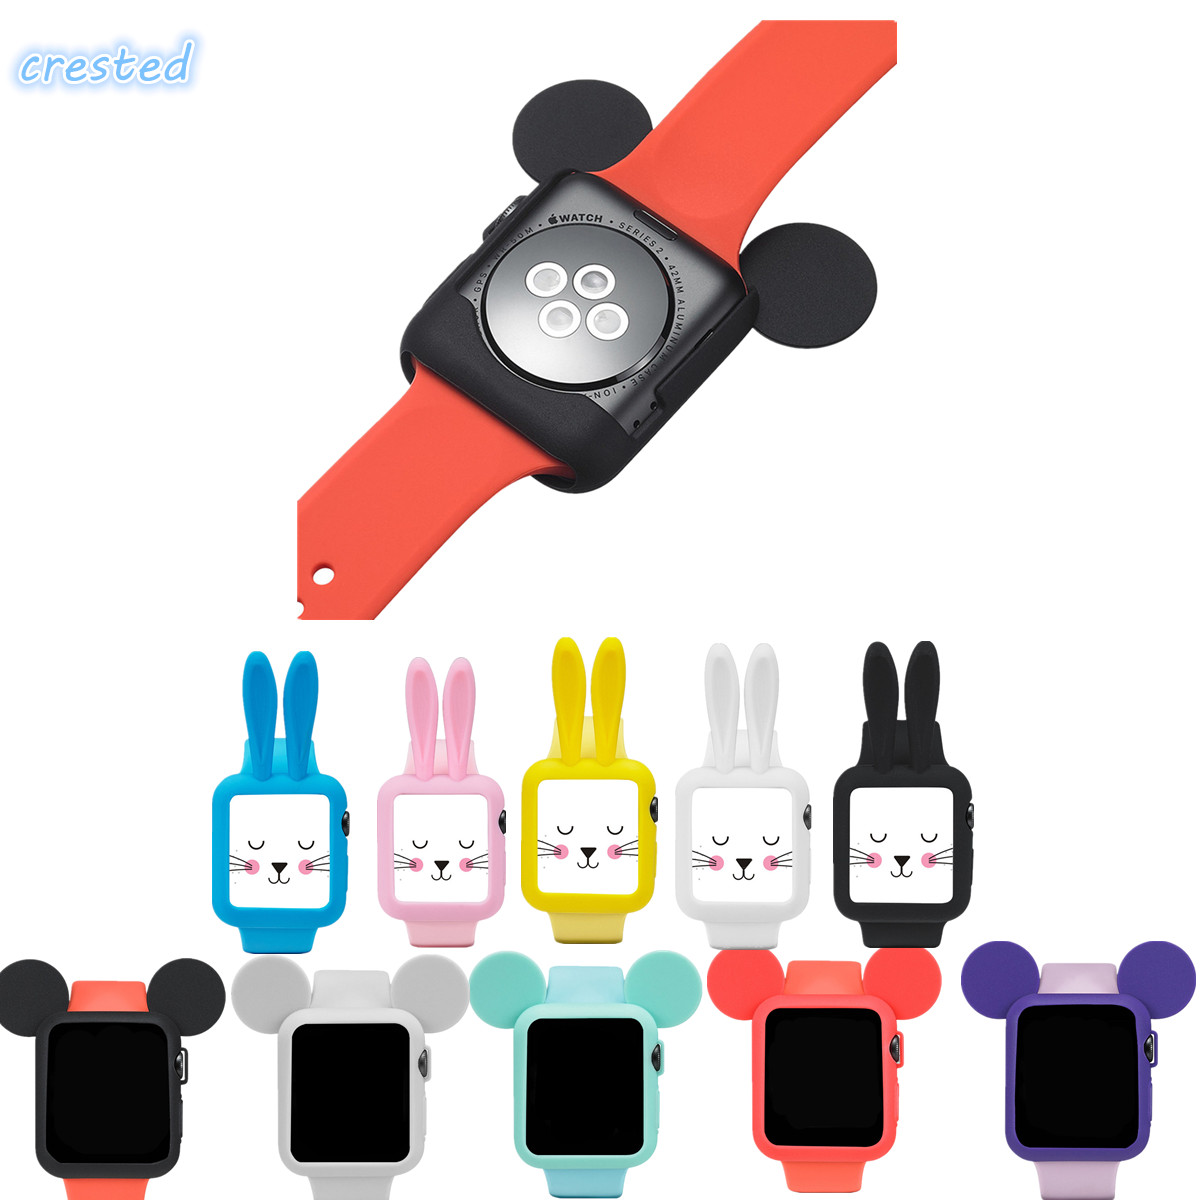 CRESTED Cute cartoon Mouse rabbit ears Soft Silicone protective for Apple Watch case iWatch 1/2 42 mm/38 Colorful cover shell 2017 new fashionable cute soft black grey pink beige solid color rabbit ears bow knot turban hat hijab caps women gifts